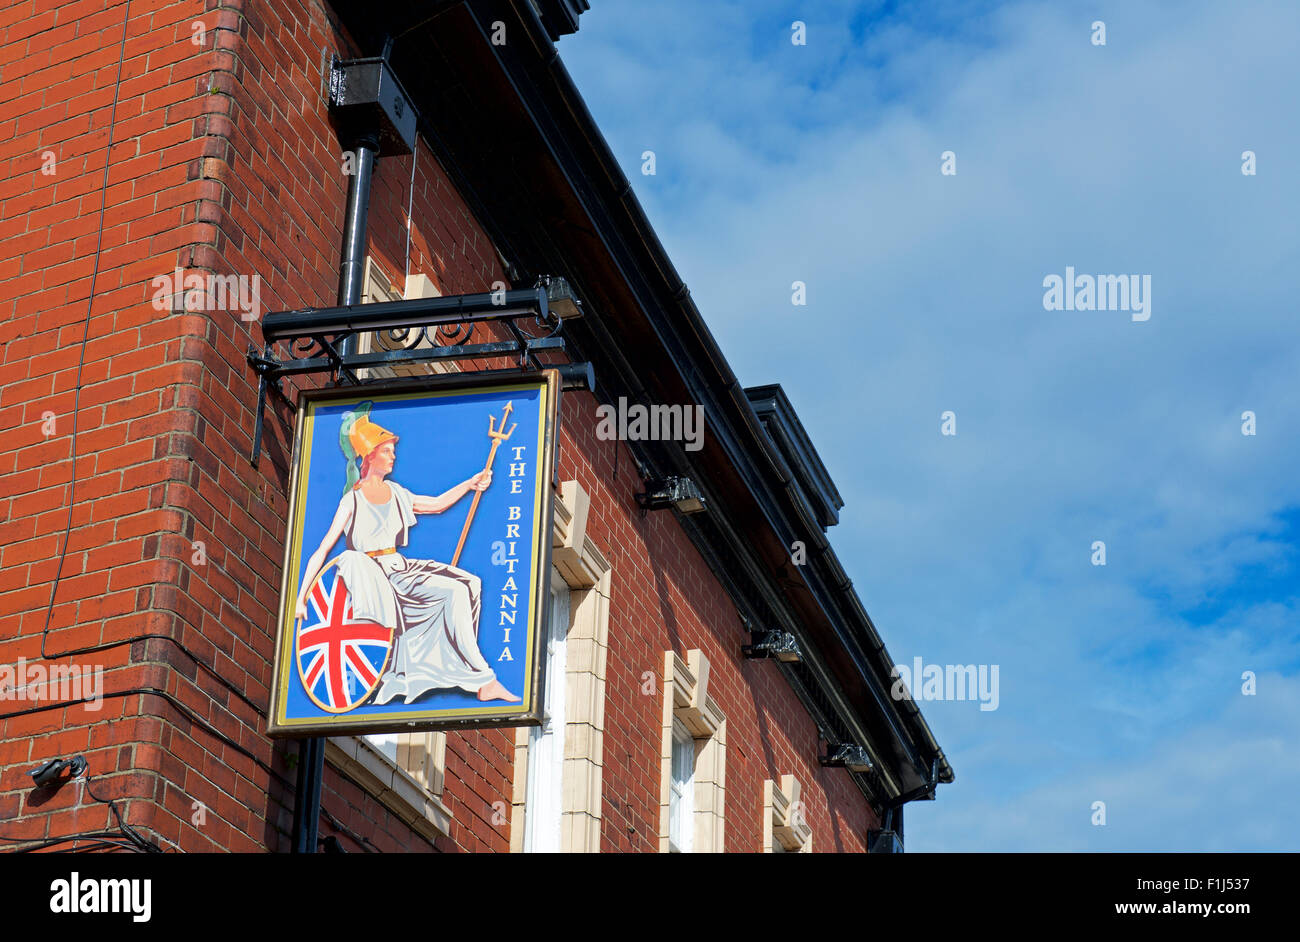 Pub Sign Uk Gb Stock Photos Amp Pub Sign Uk Gb Stock Images